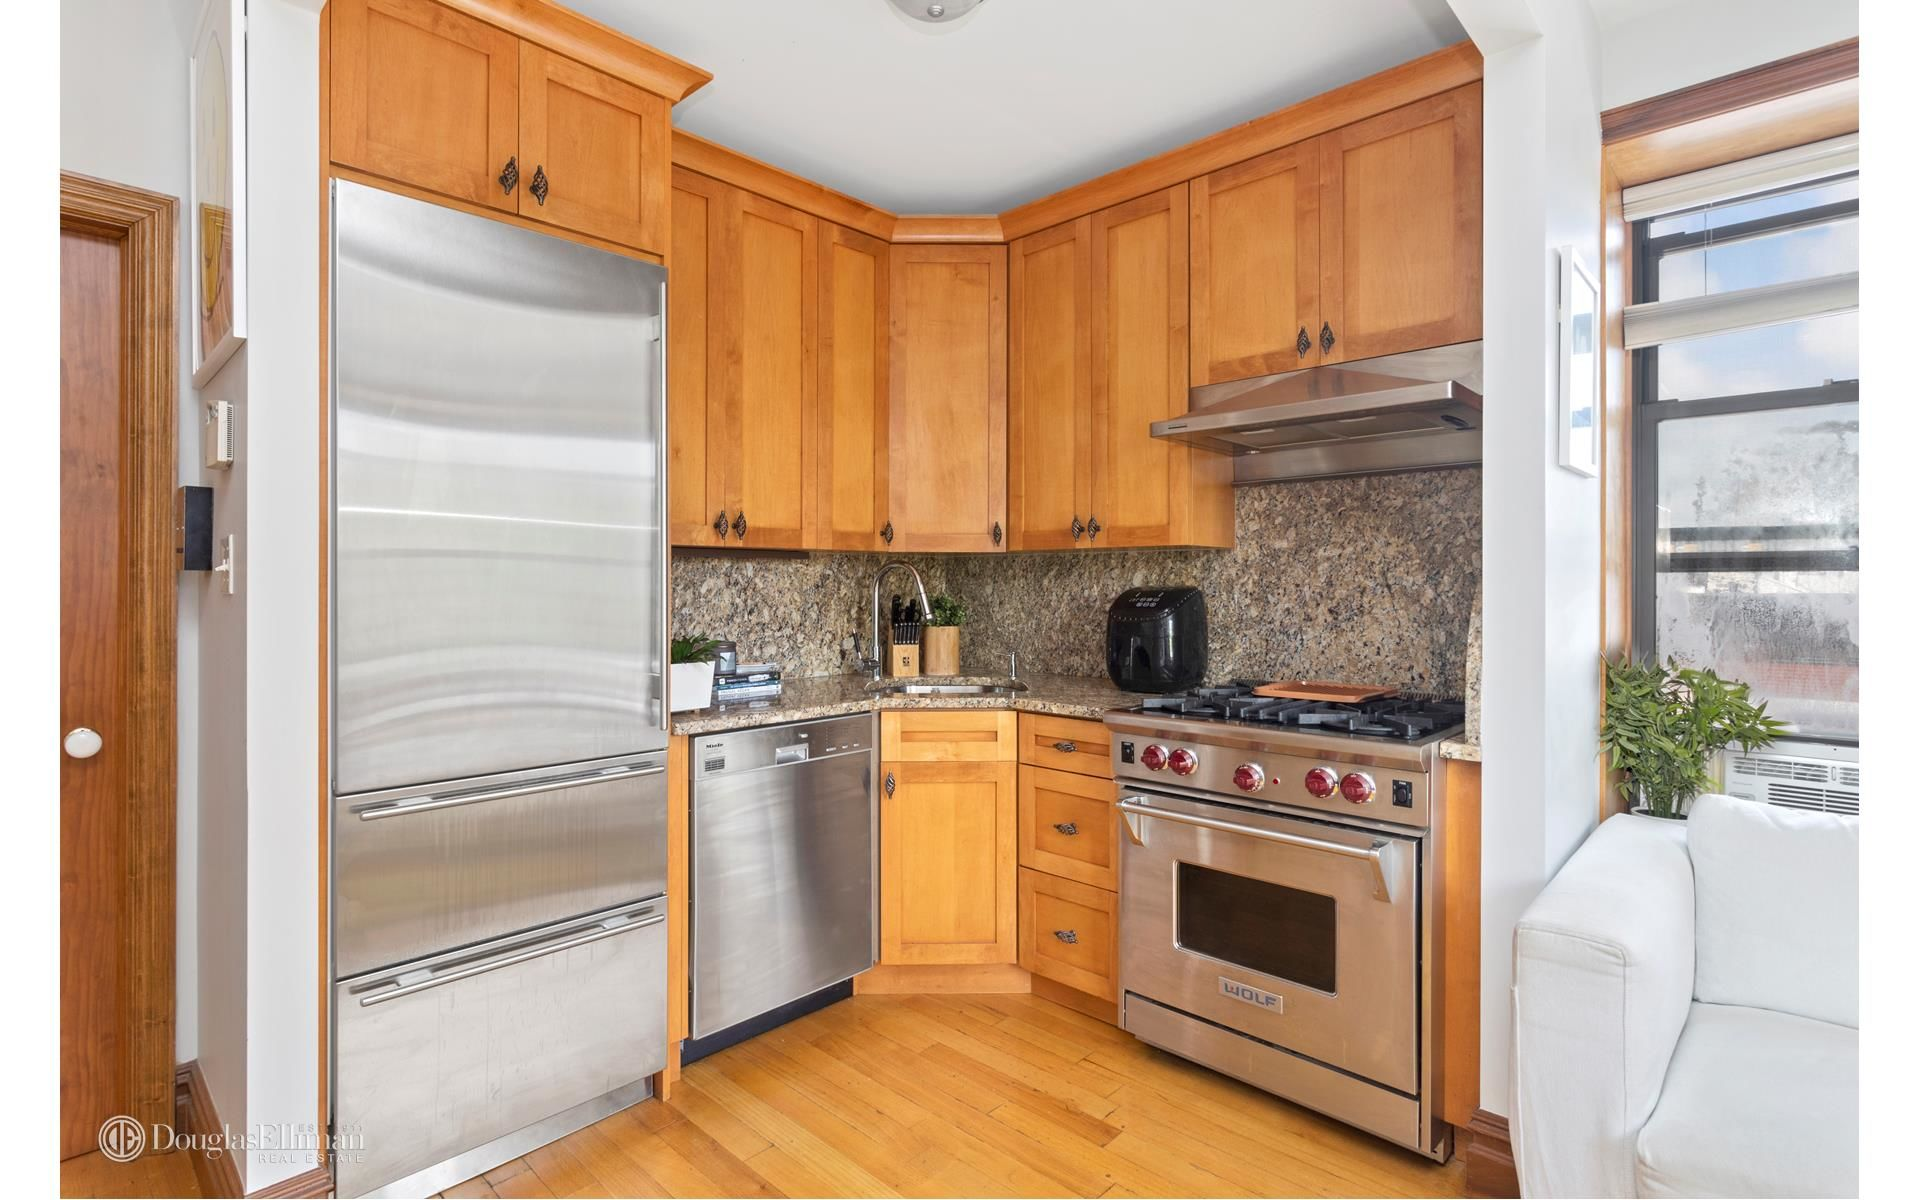 378 6th Ave, APT 4A Photo 1 - ELLIMAN-3415402